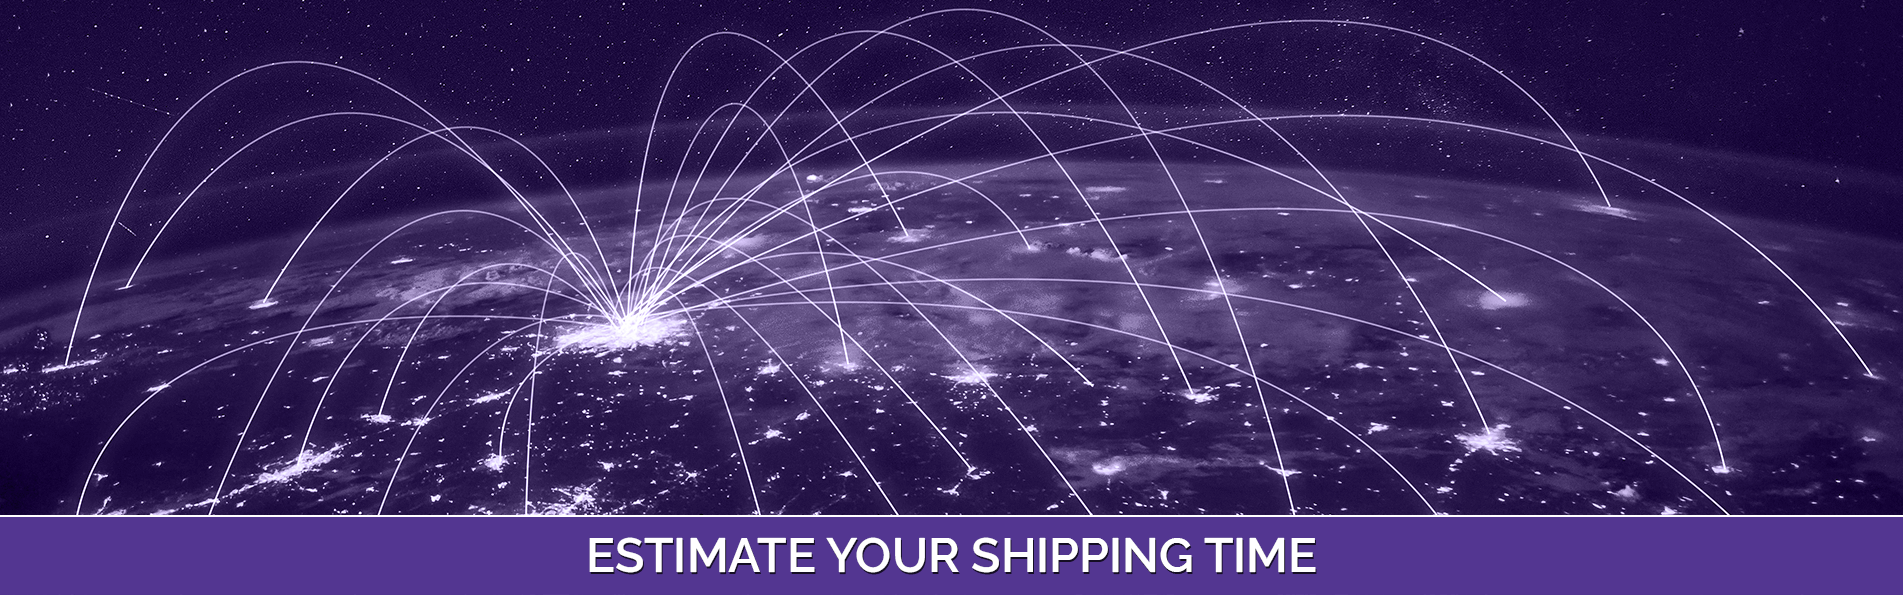 Estimate Your Shipping Time